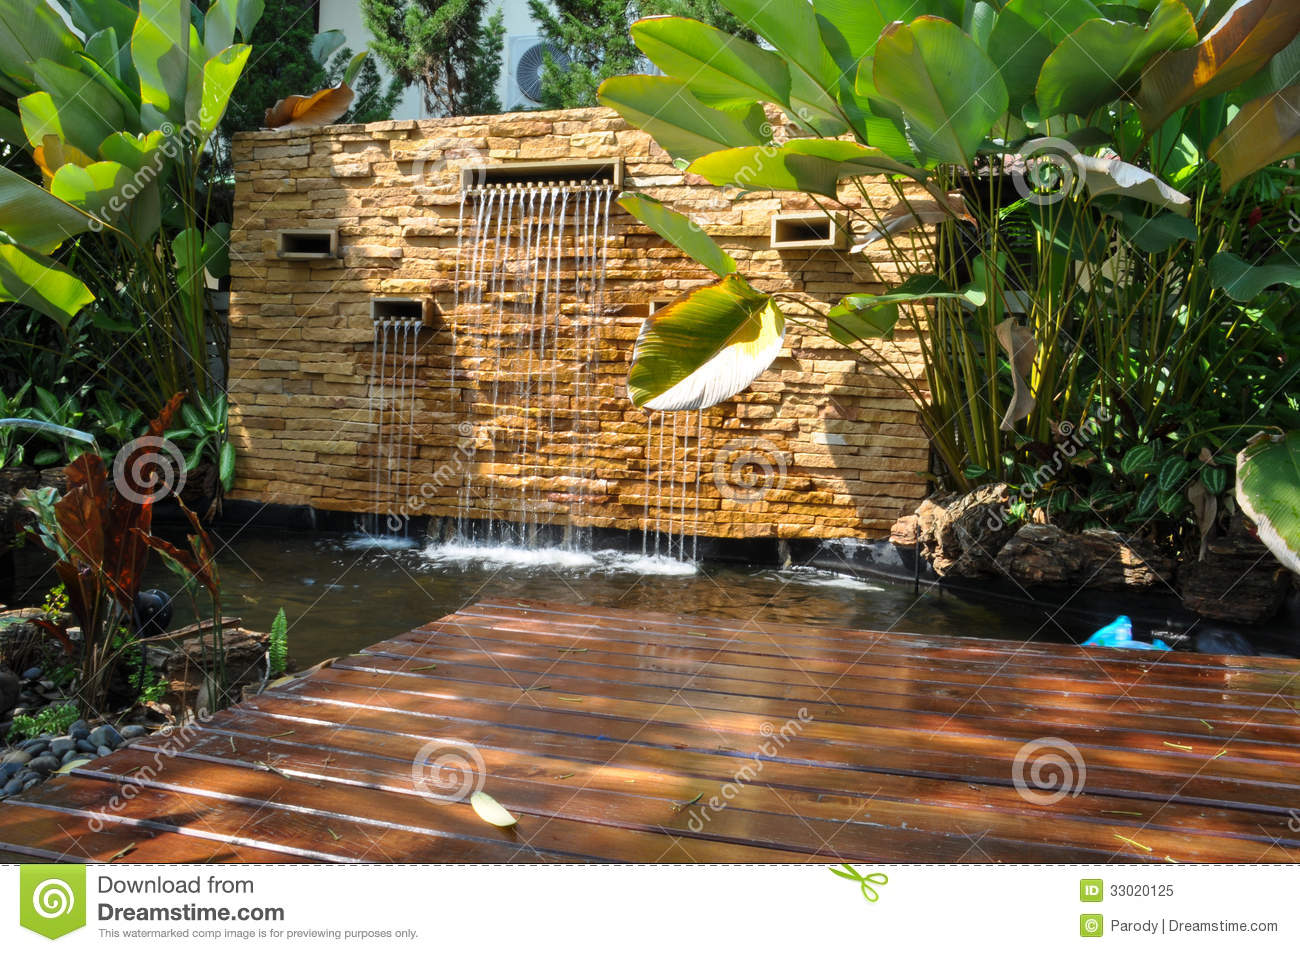 Decorative home garden stone waterfall pond stock image for Cascadas para jardin fotos